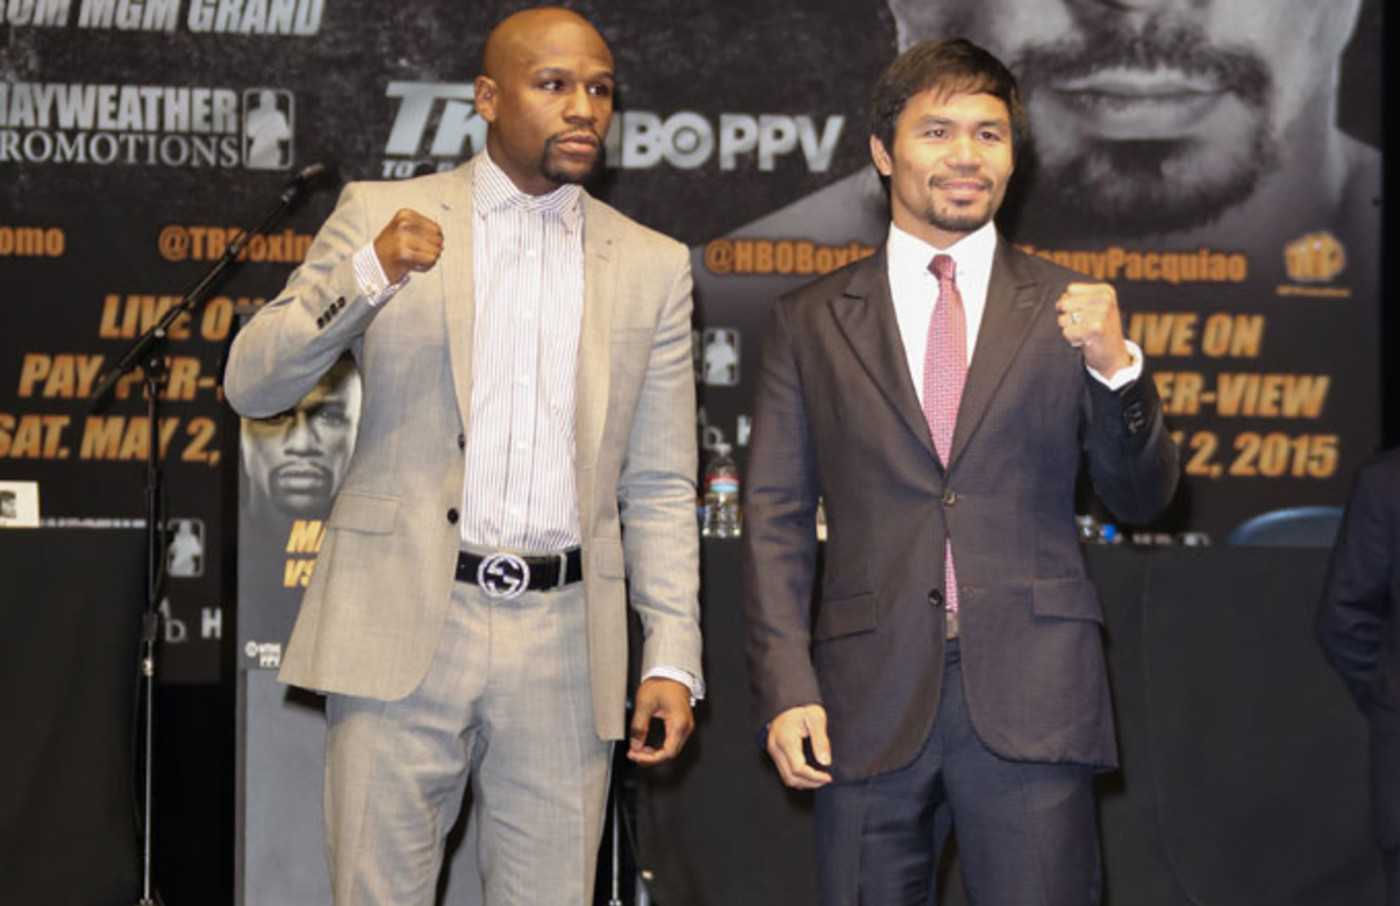 Floyd Mayweather and Manny Pacquiao at their press conference.